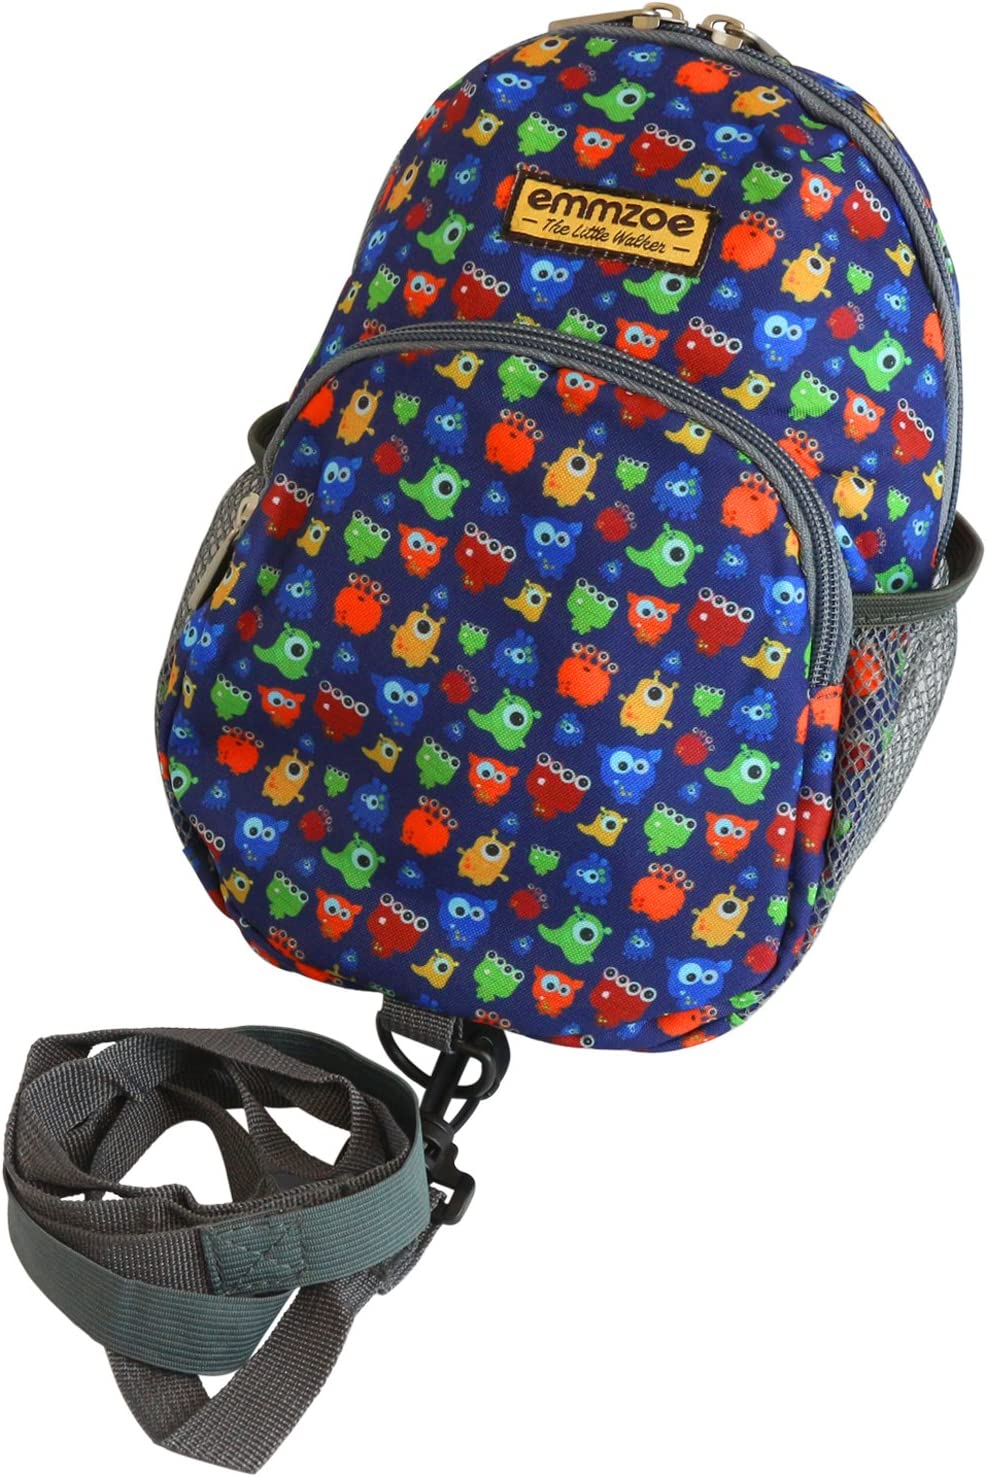 Toys Neon Blue Food Emmzoe Little Walker Neon Toddler Backpack with Safety Harness Leash Lightweight Fits Snacks